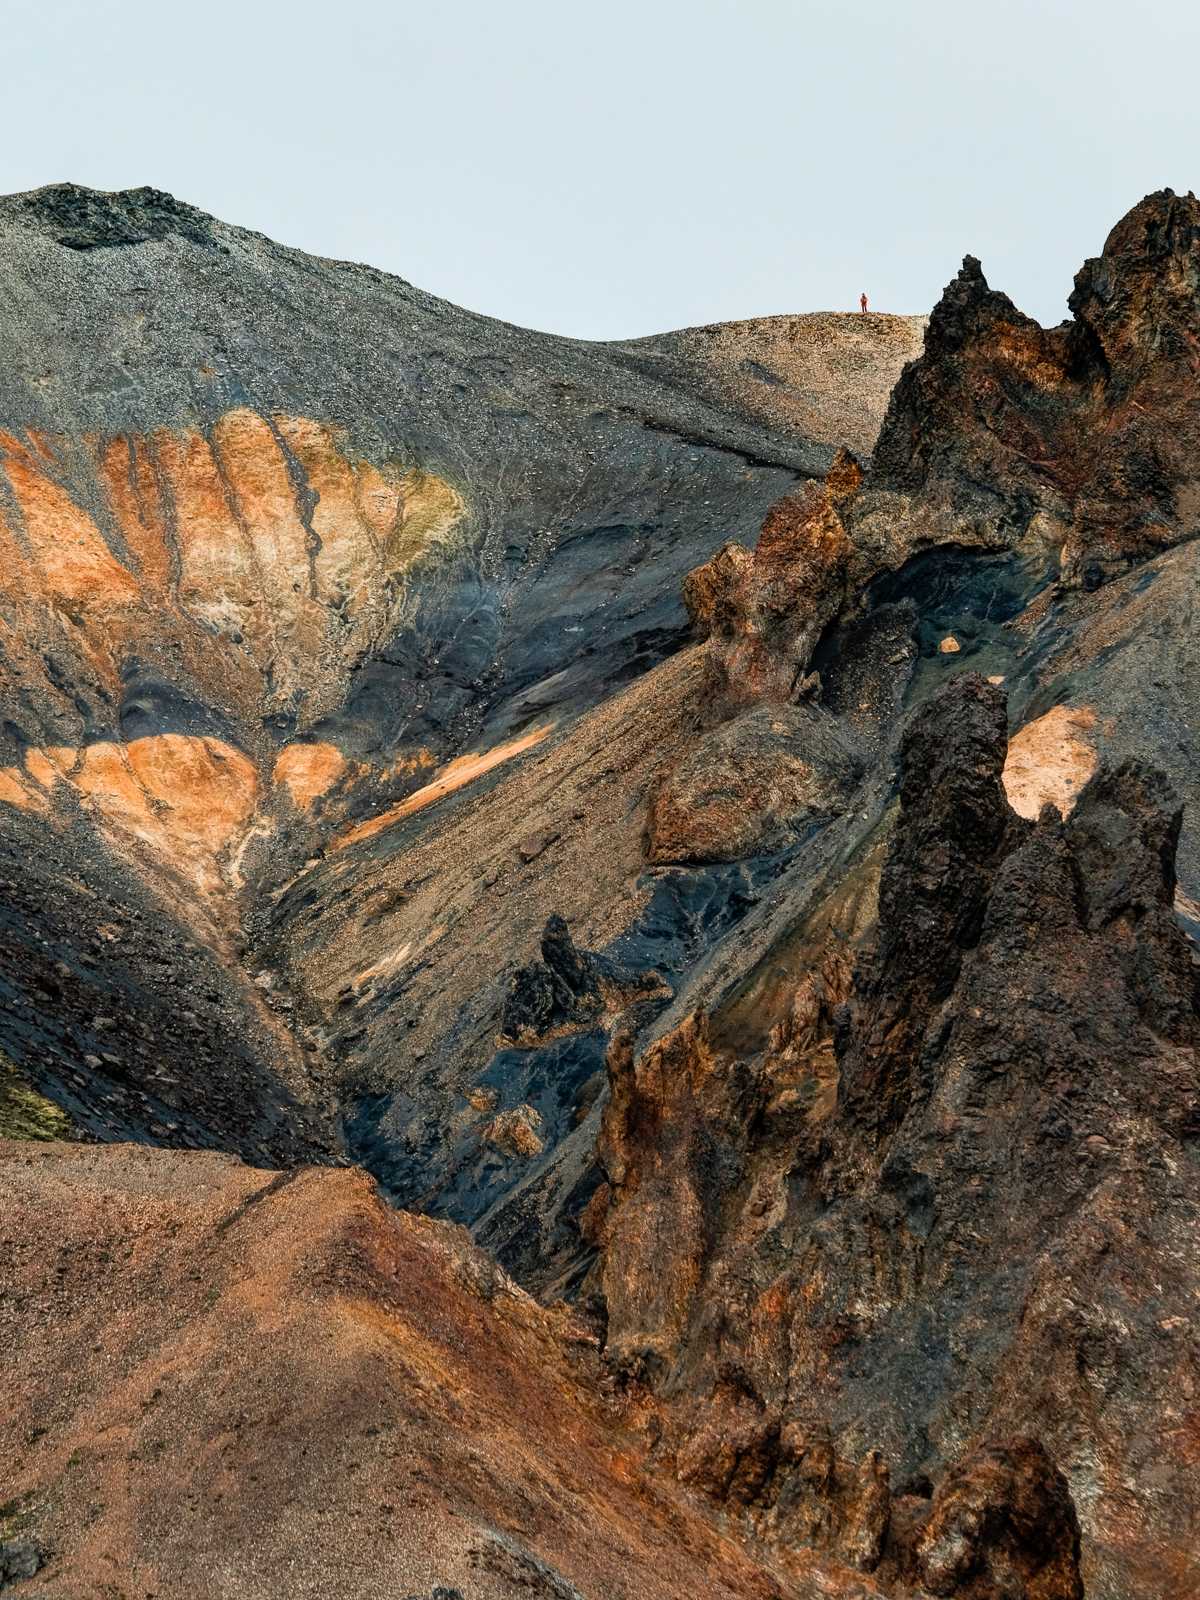 on the top of the rock... Landmannalaugar   (XF 50-140mm f2.8 at 188mm 1/500 f6.4 ISO200) with x1.4 teleconverter.